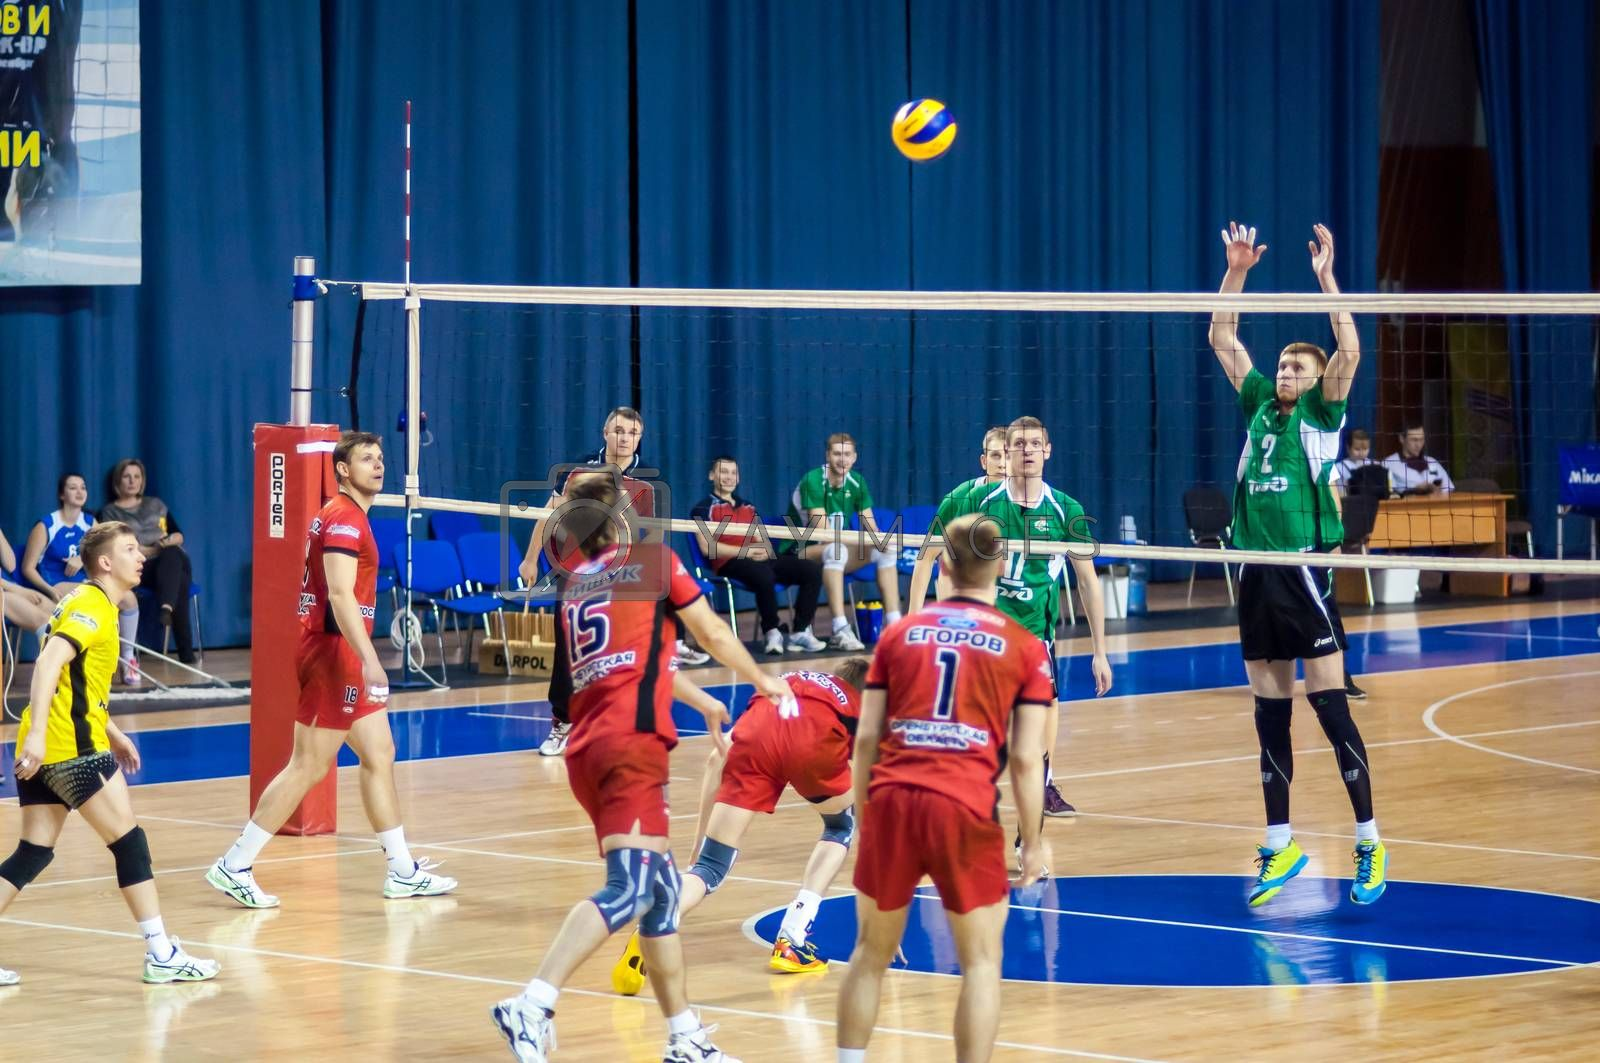 Competition to Volleyball. by 0608195706081957